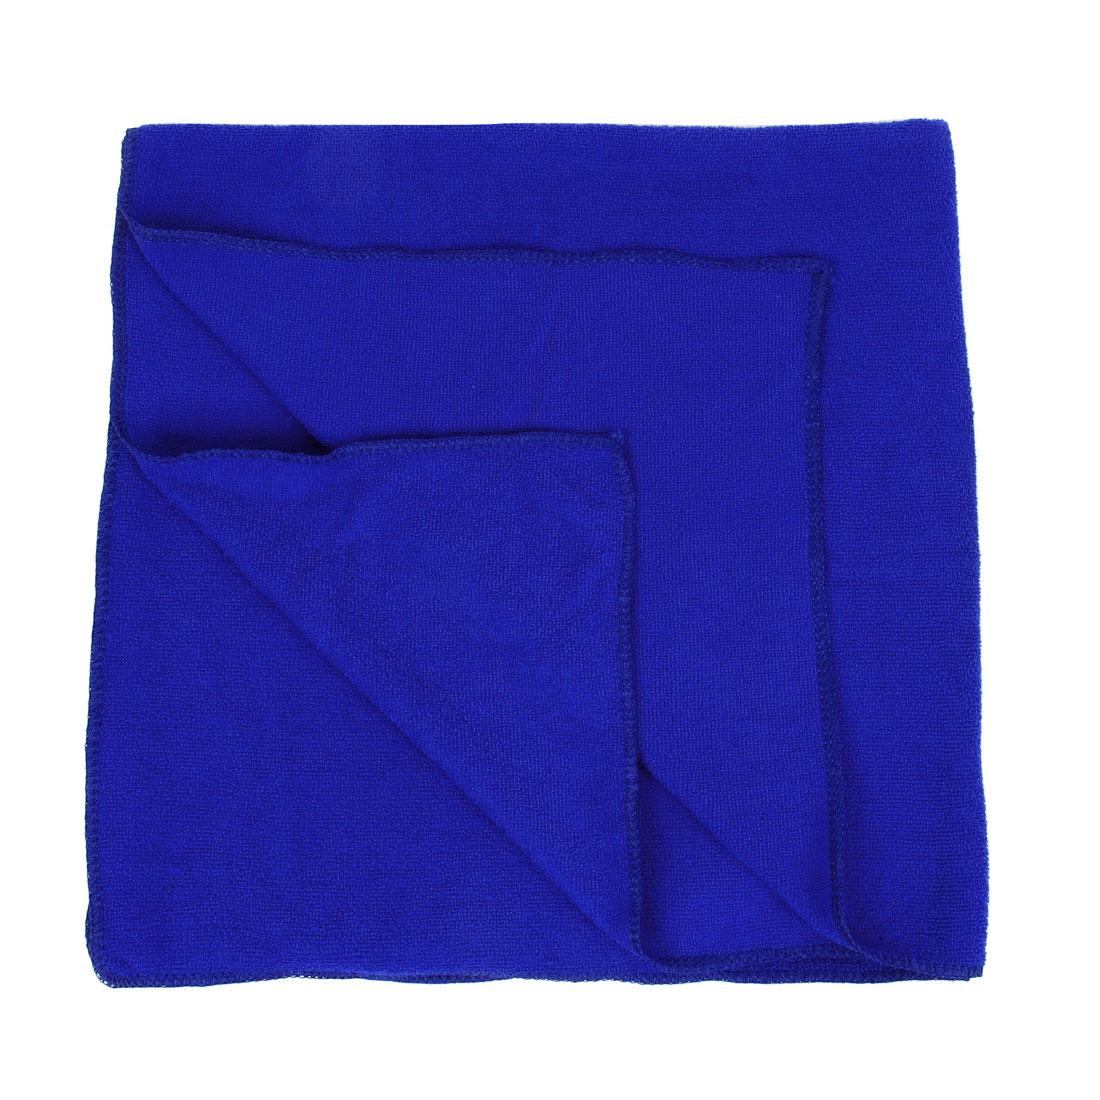 Spa Beach Hotel Home Blue Rectangle Drying Bath Shower Towel 140 x 70cm